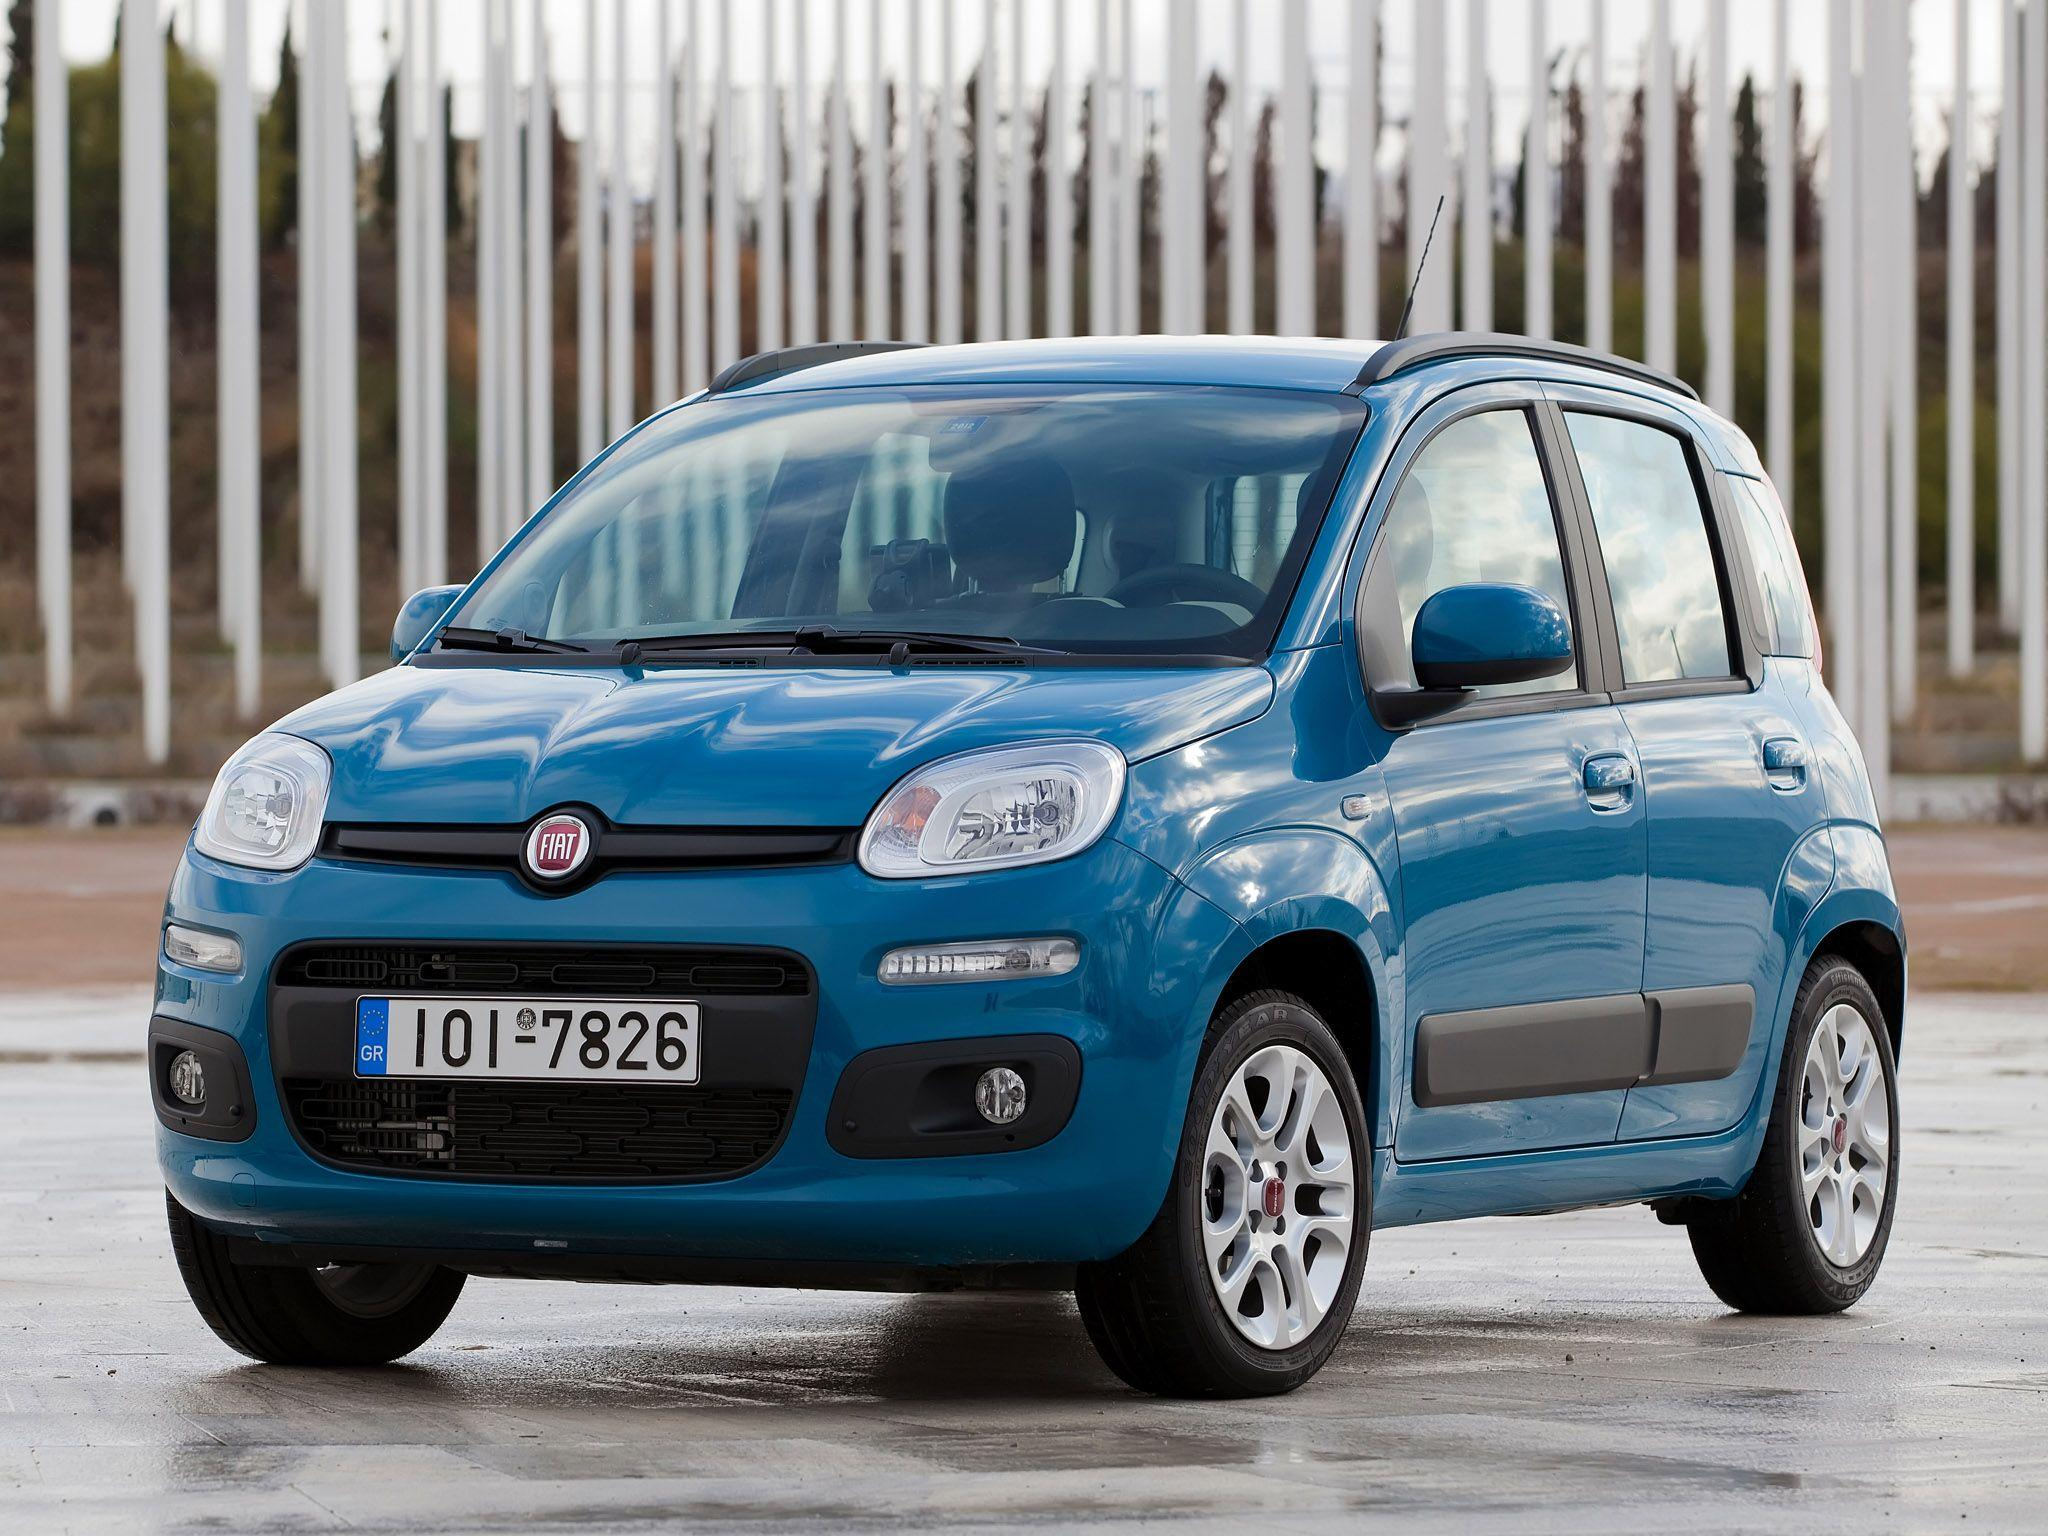 Fiat Panda 2011: Review, Amazing Pictures and Image – Look at the car